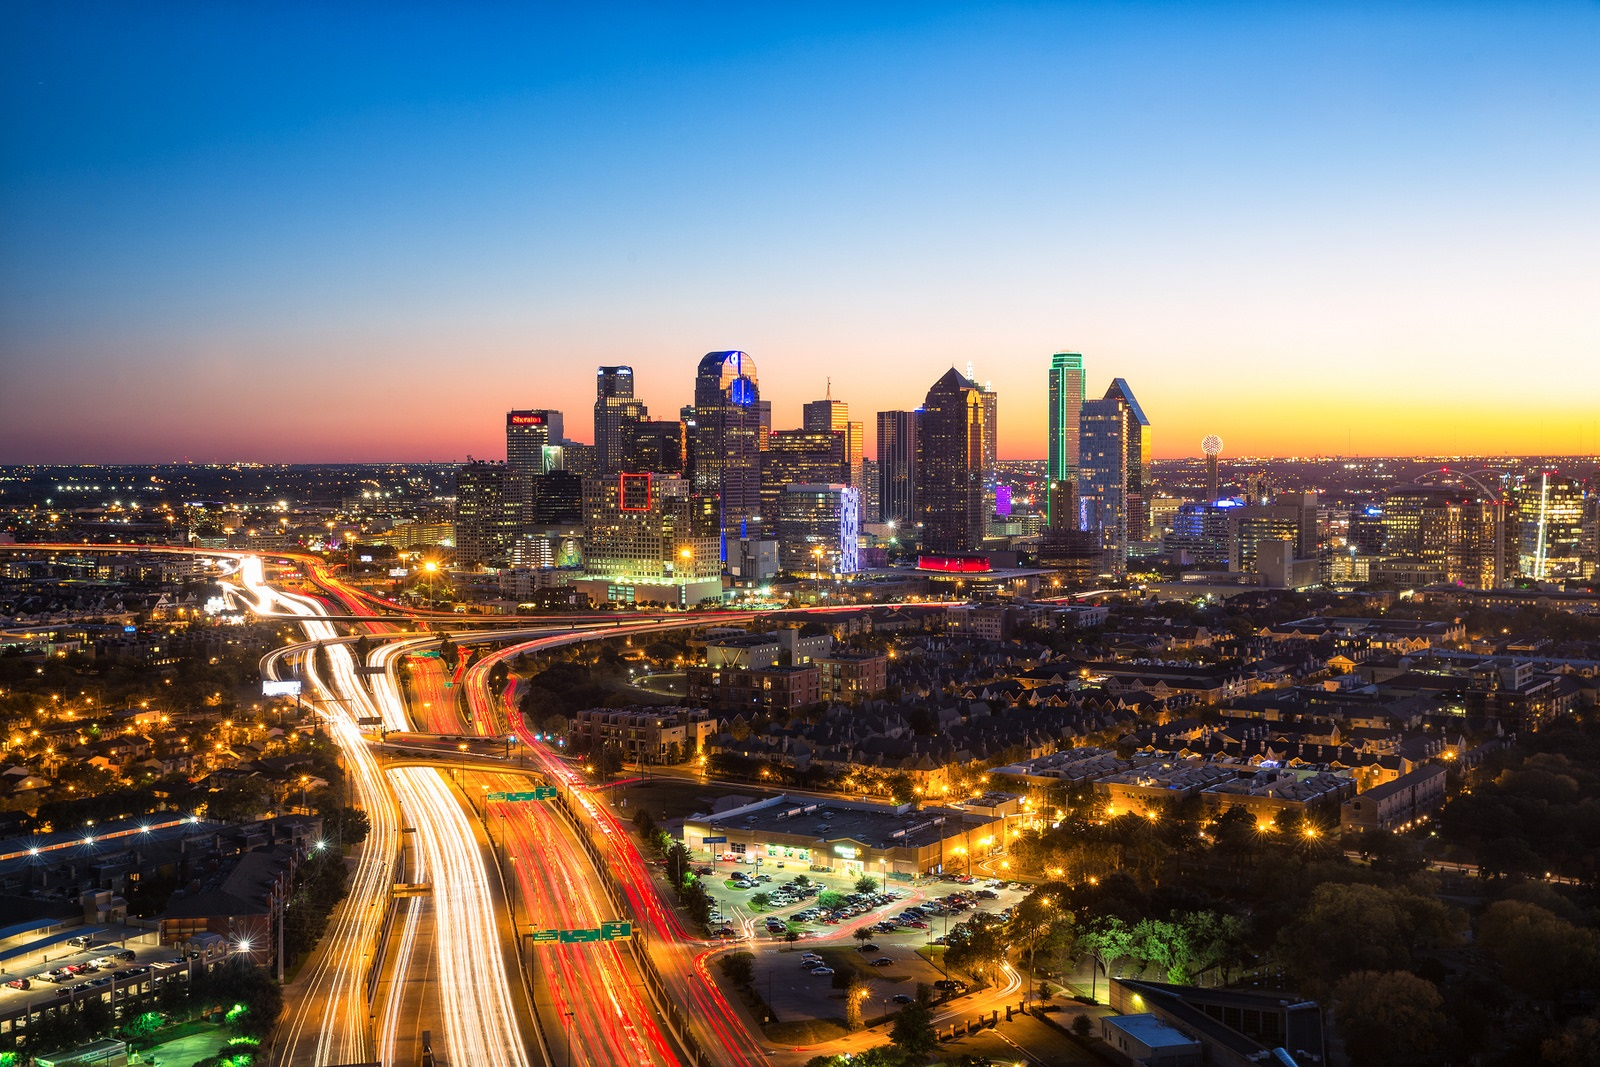 Dallas Skyline at Dusk with Sunset. Photo: Stephen Masker